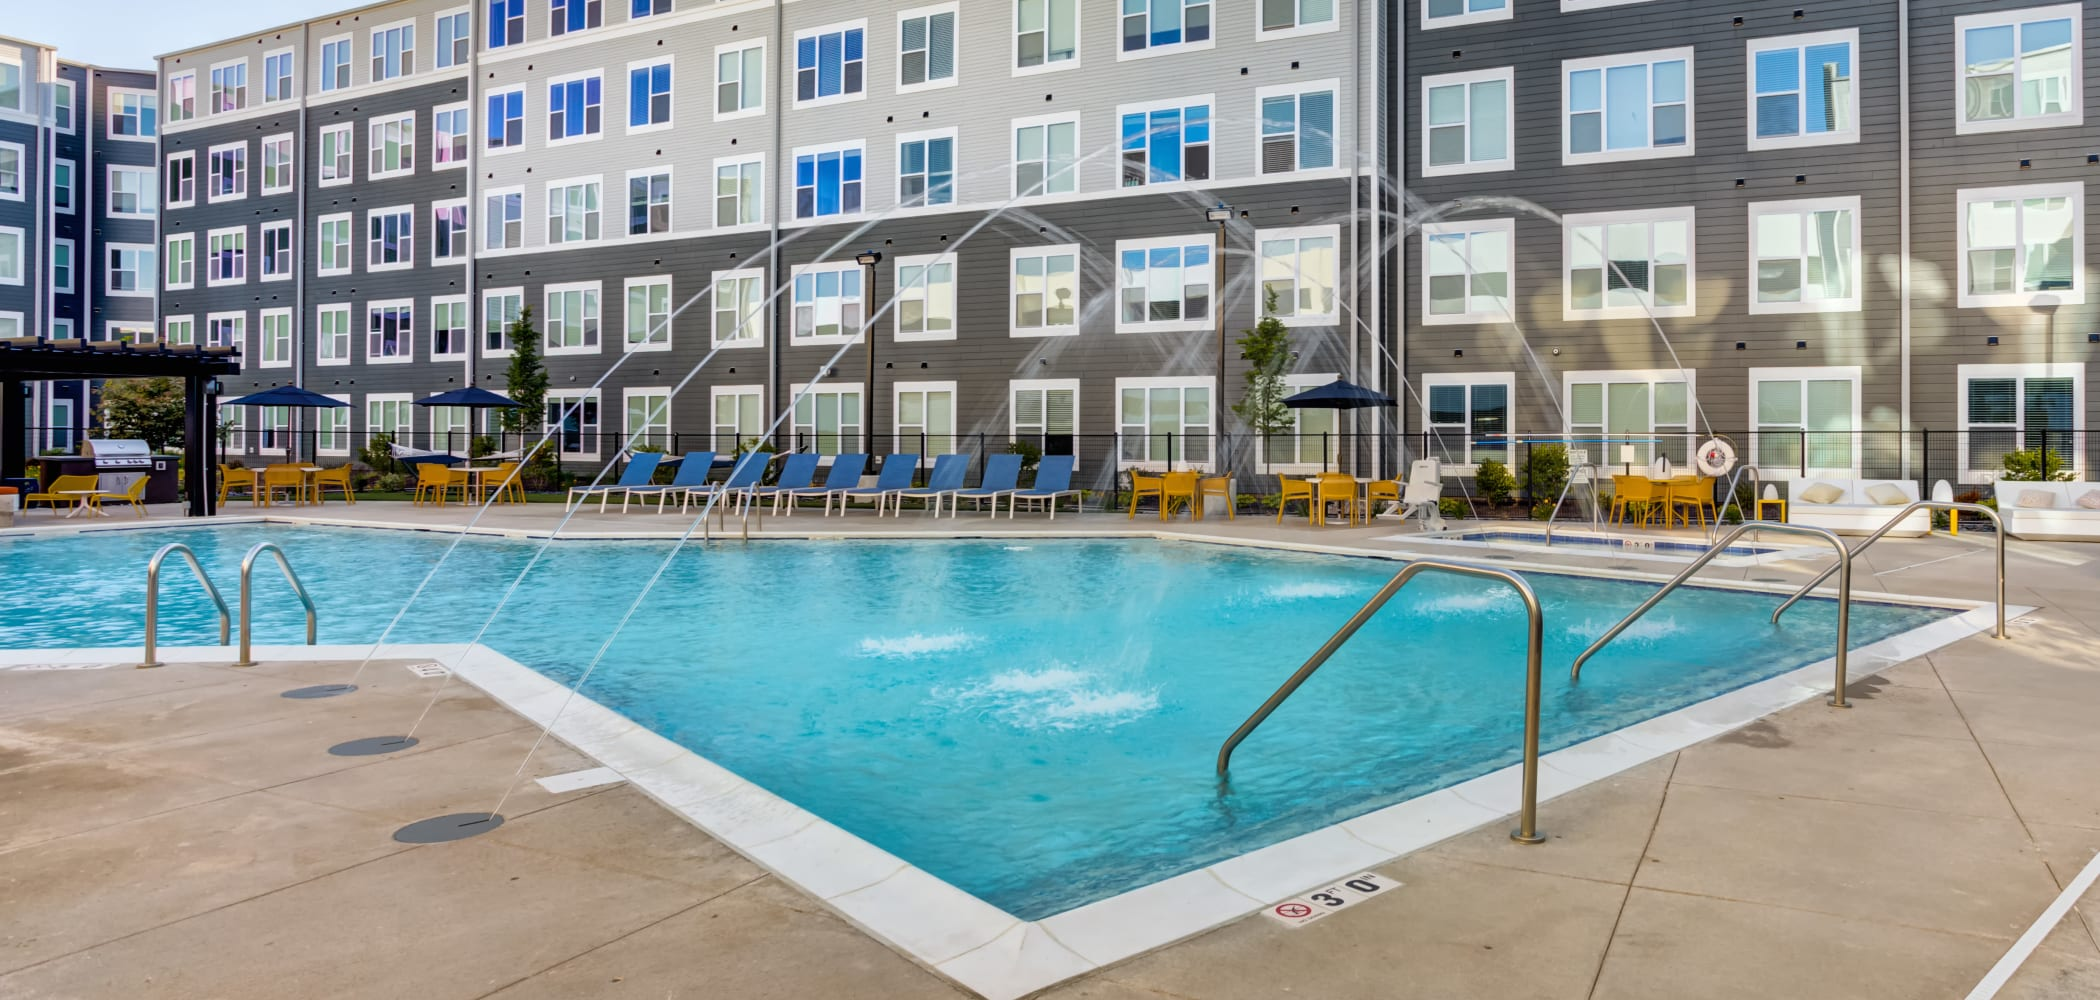 Our Apartments in Coralville, Iowa offer a Swimming Pool